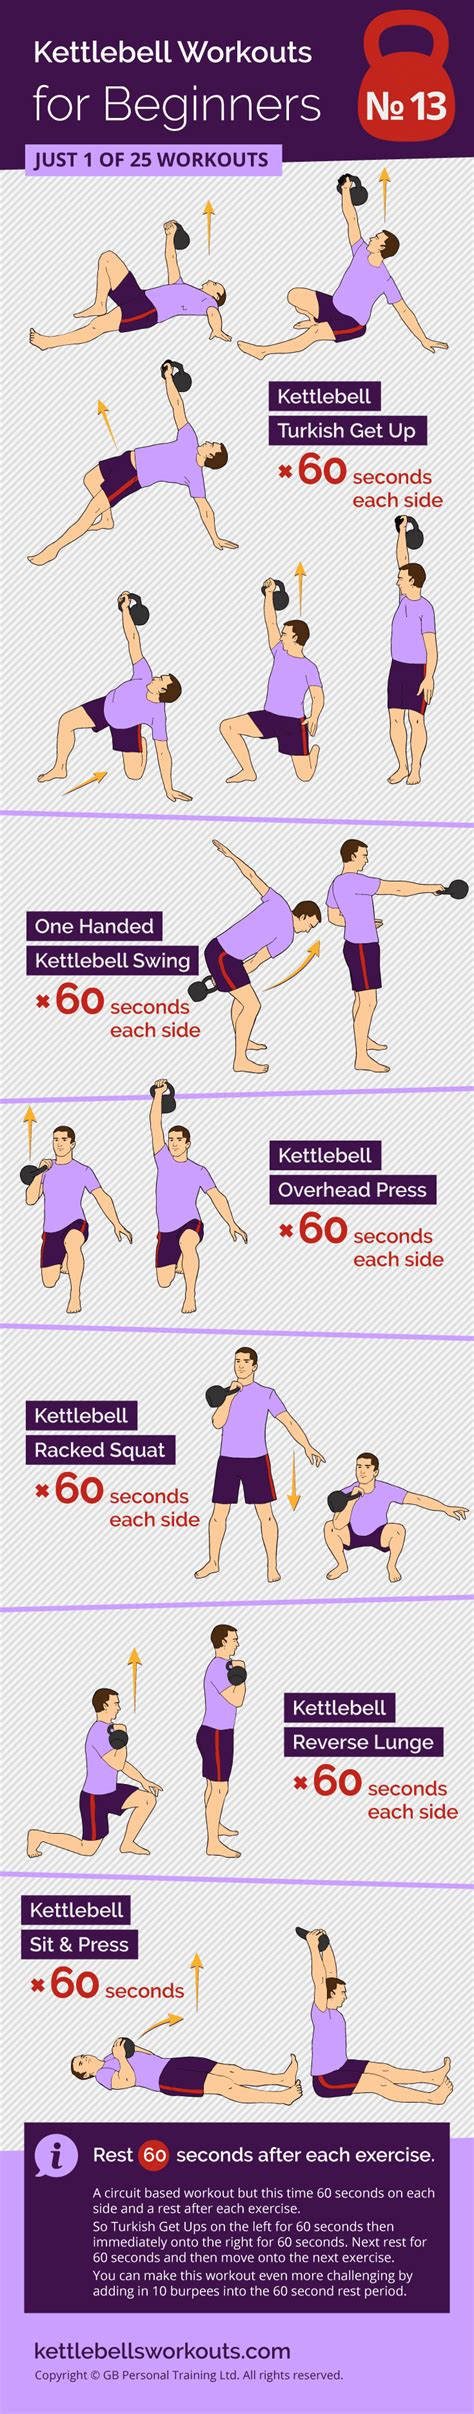 kettlebell circuit exercises workouts beginners